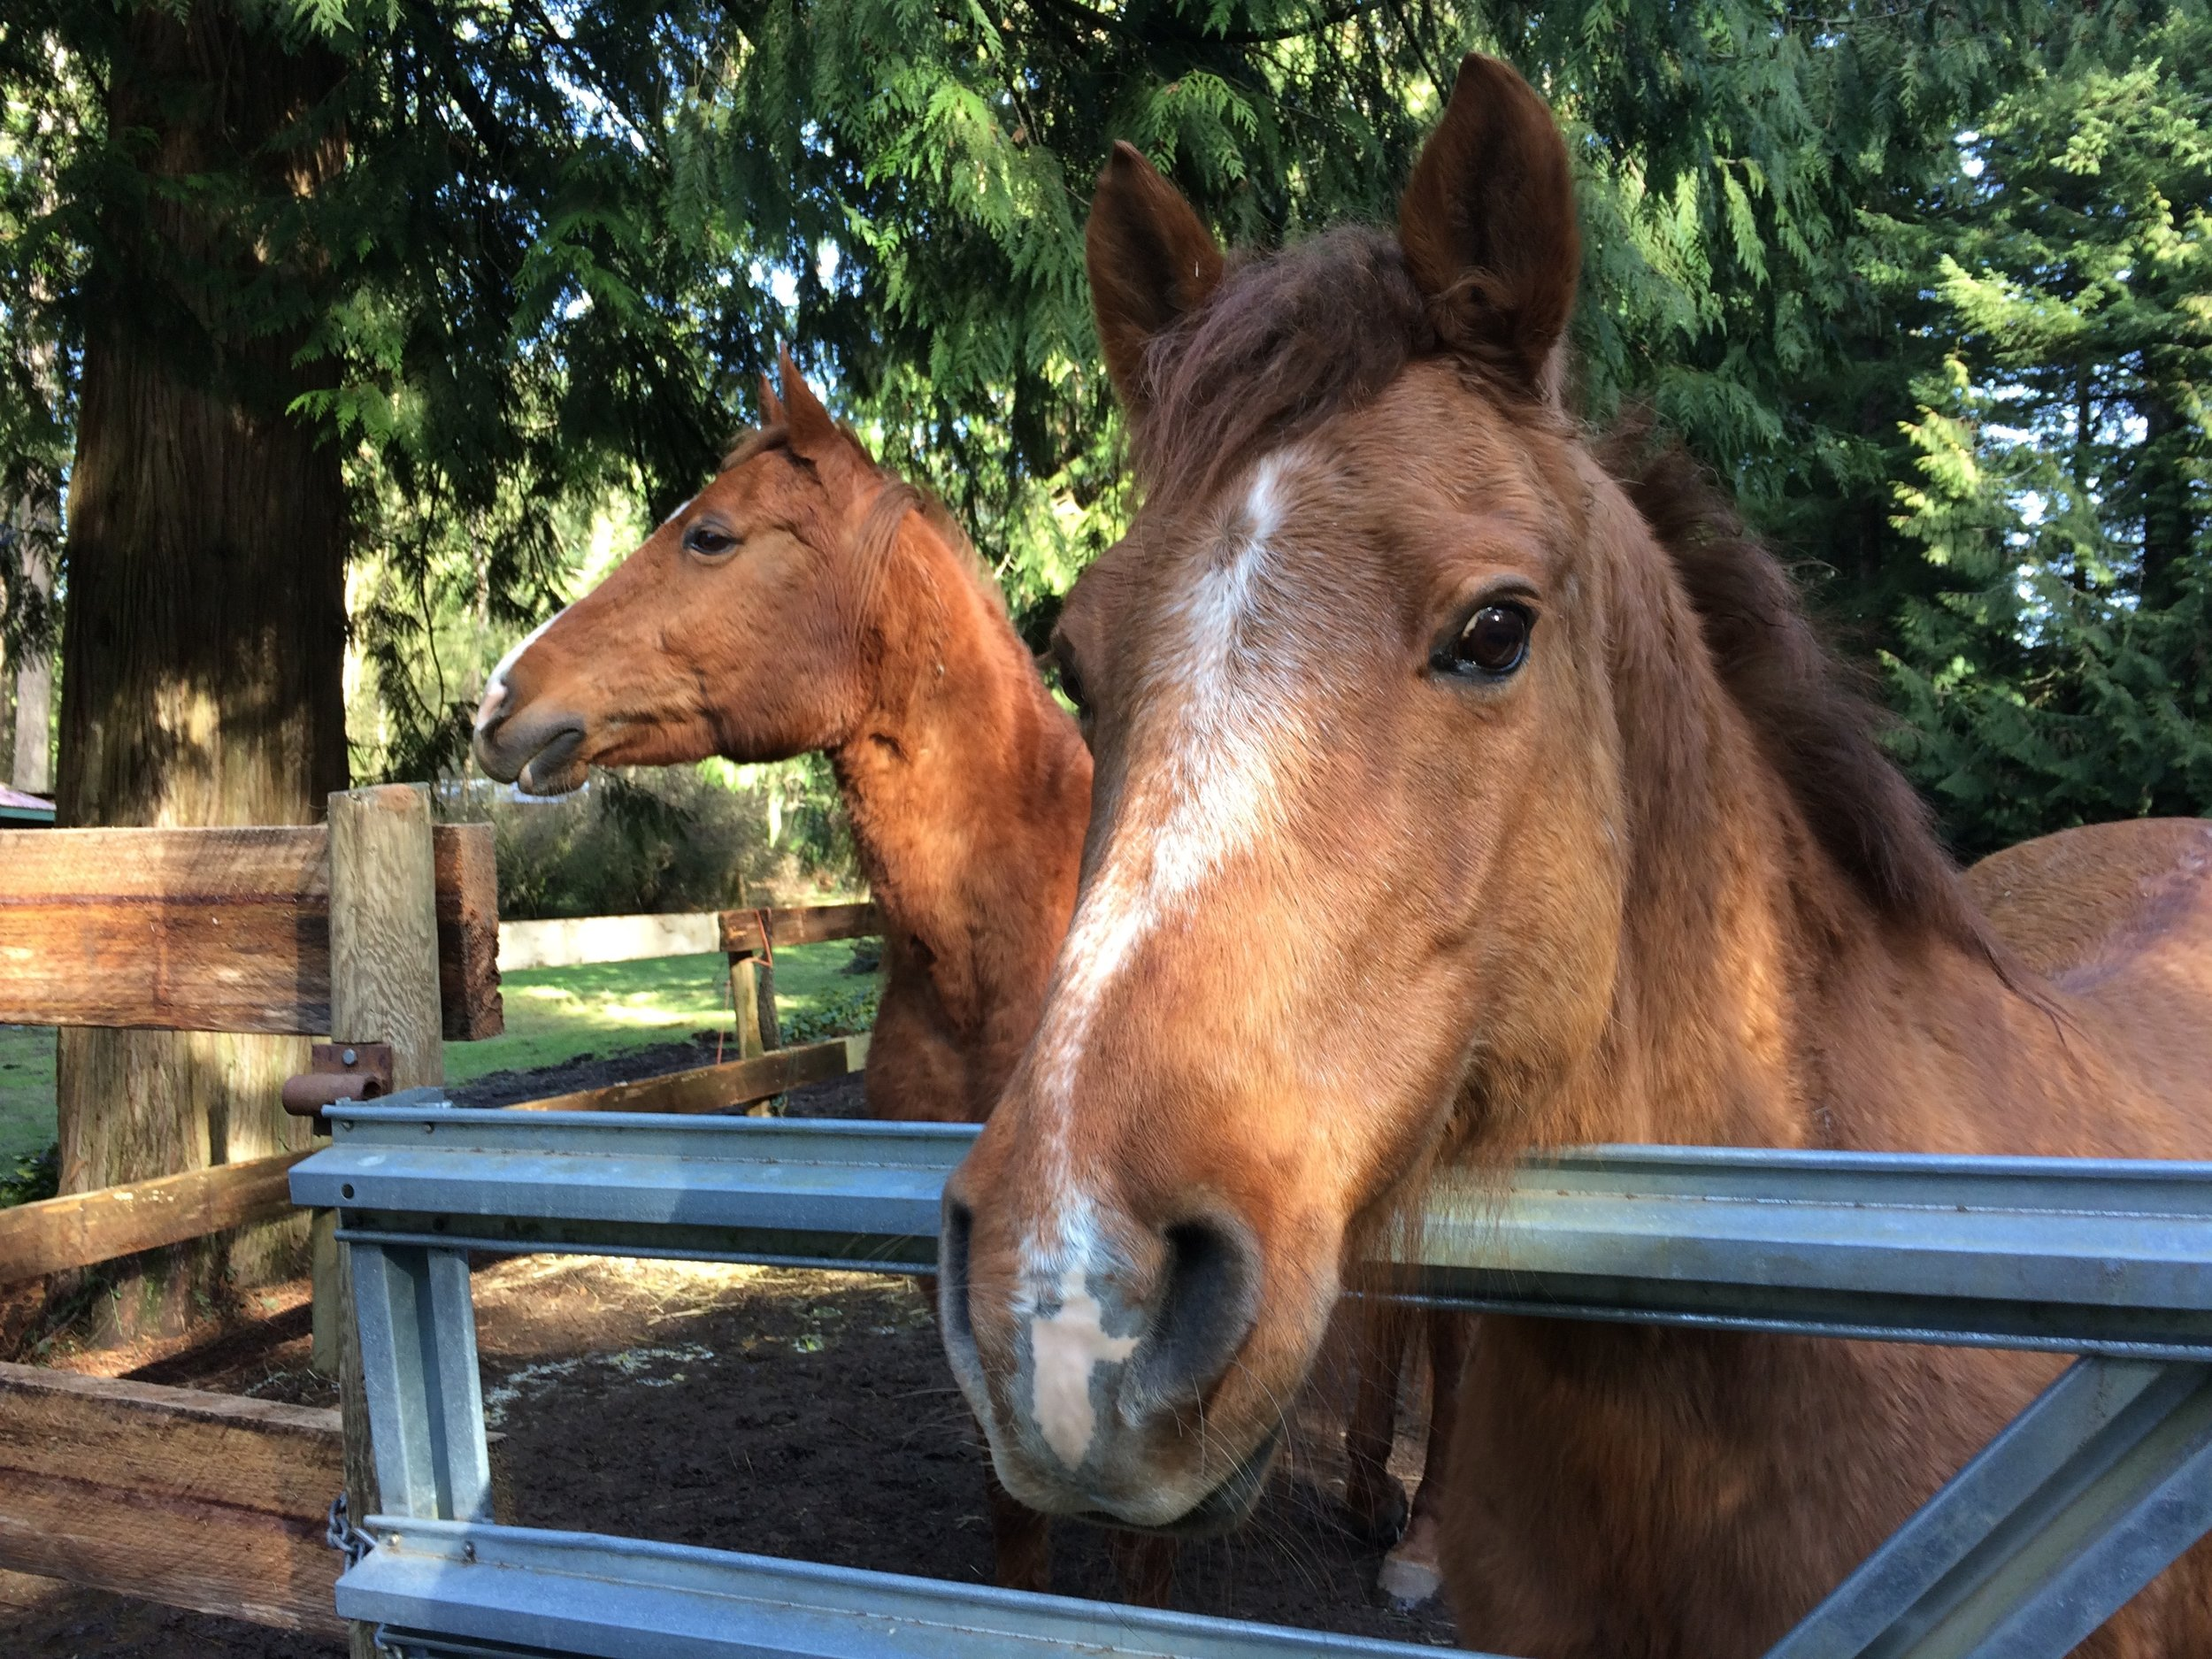 Here are Honour and Kiana, impatiently waiting at the gate for something to happen, hoping I will take them out to pasture. They only wish they could choose to do this for themselves!